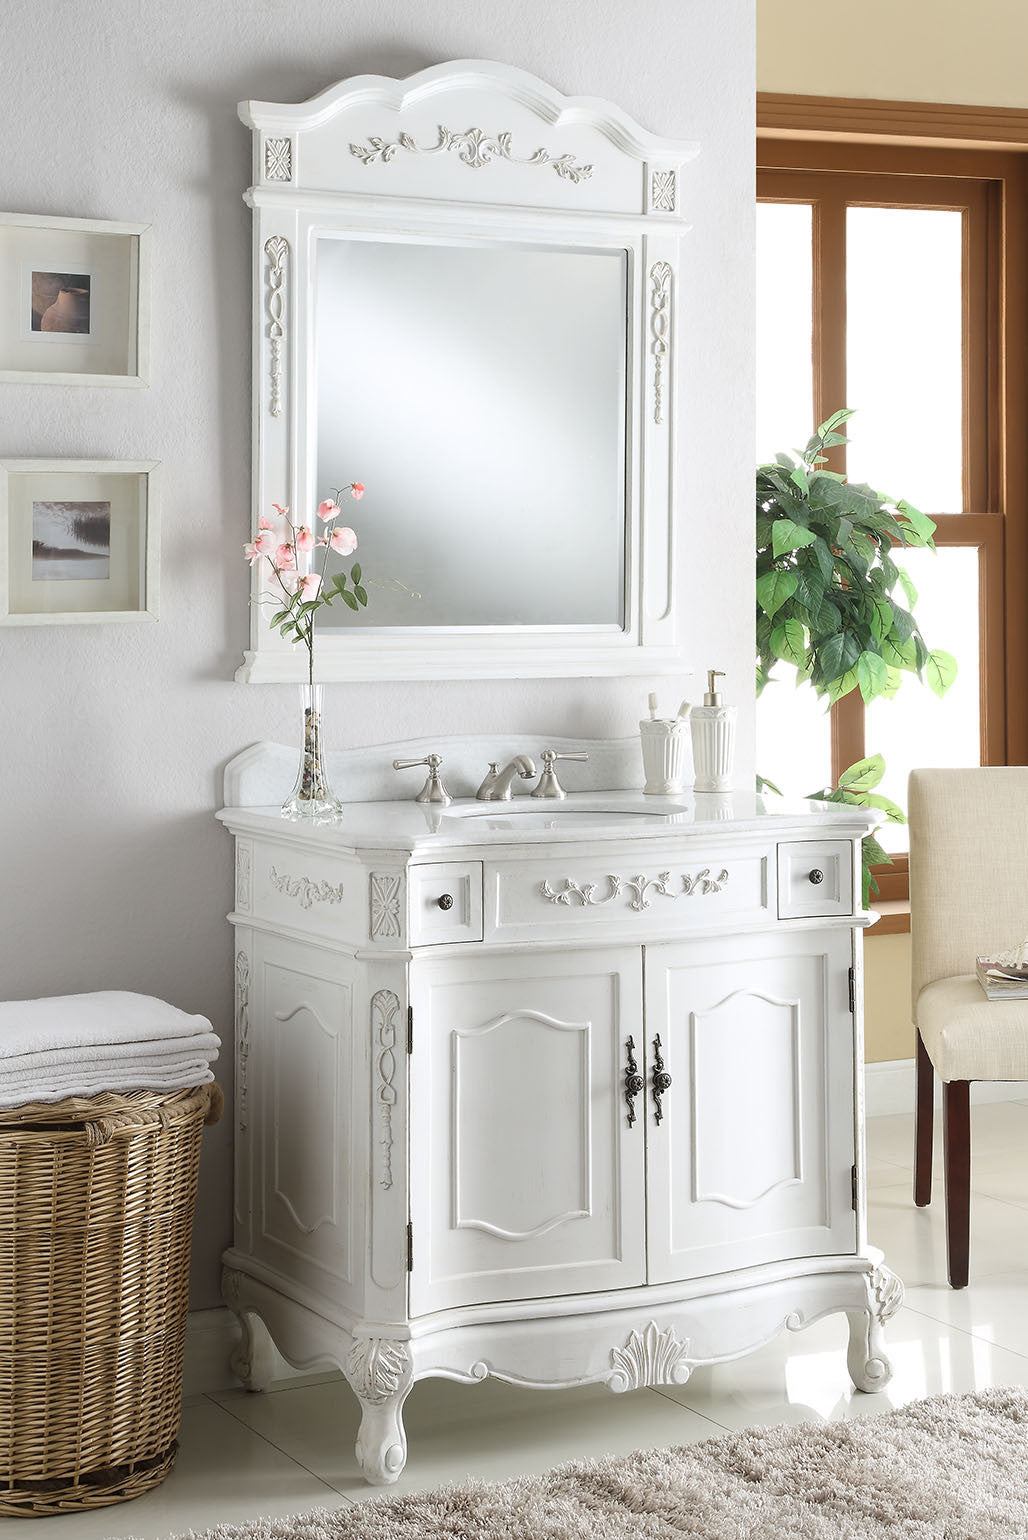 chic classic brilliant sink for toronto imposing rustic bathroom vanity style antique white fairmont discount vanities on